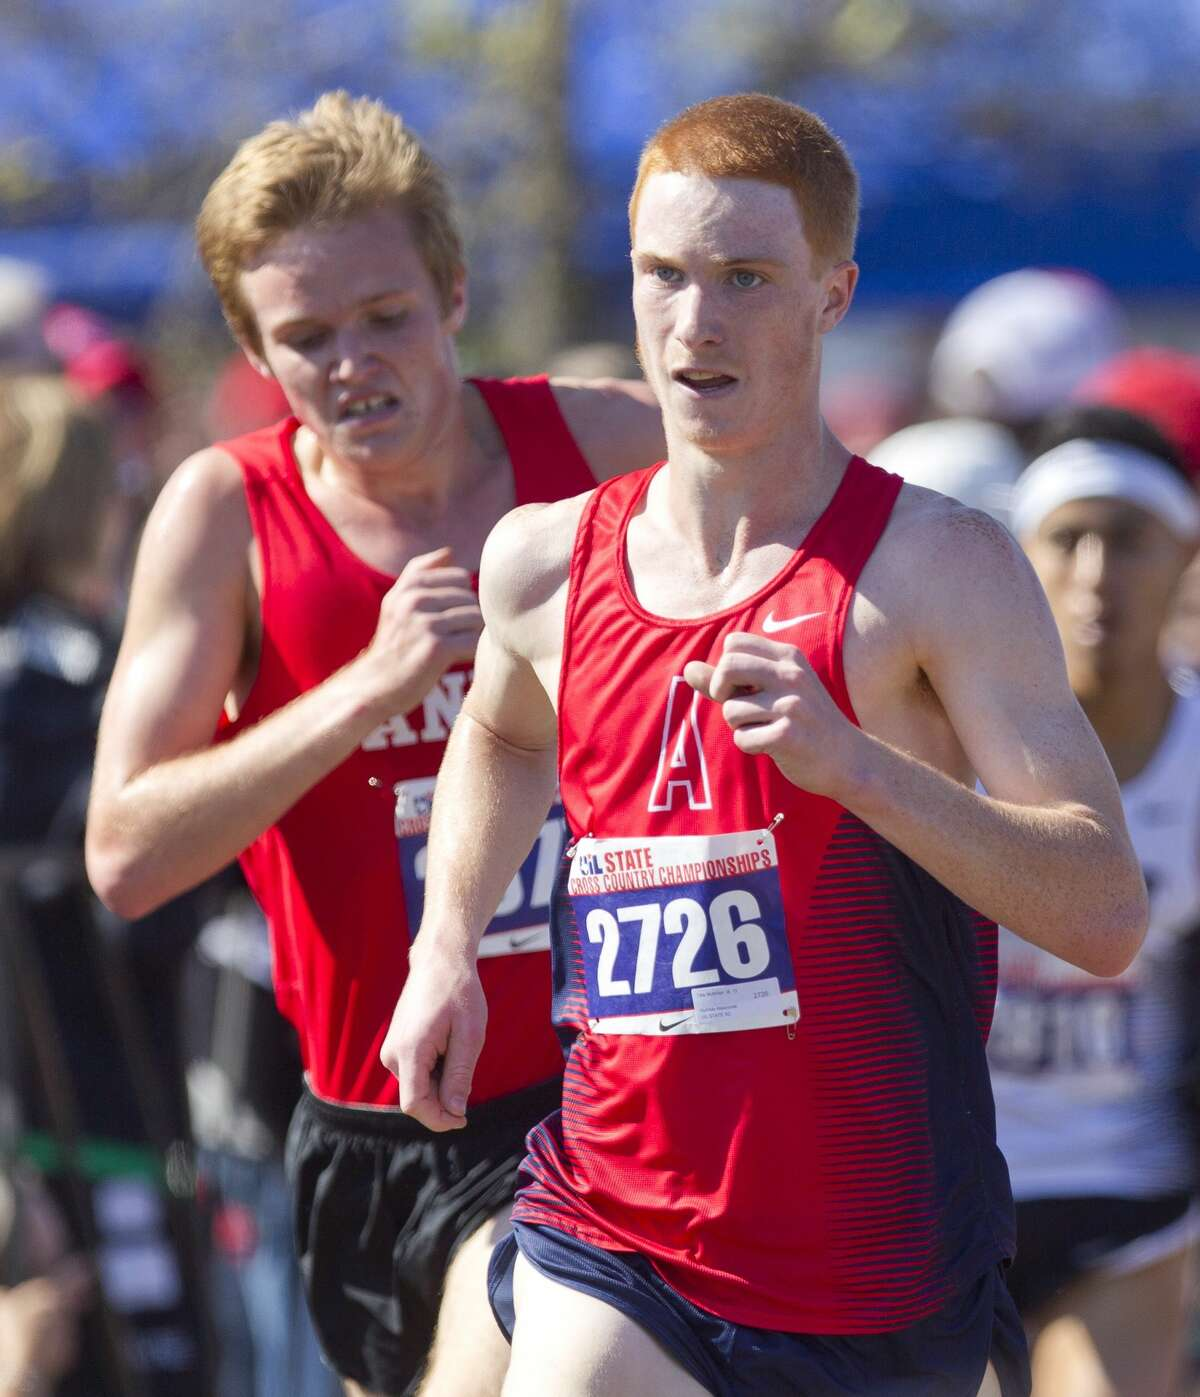 Tat McMilan, of Atascocita, competes in the Class 6A boys race during the UIL state cross country championships at Old Settlers Park Saturday, Nov. 12, 2016, in Round Rock.